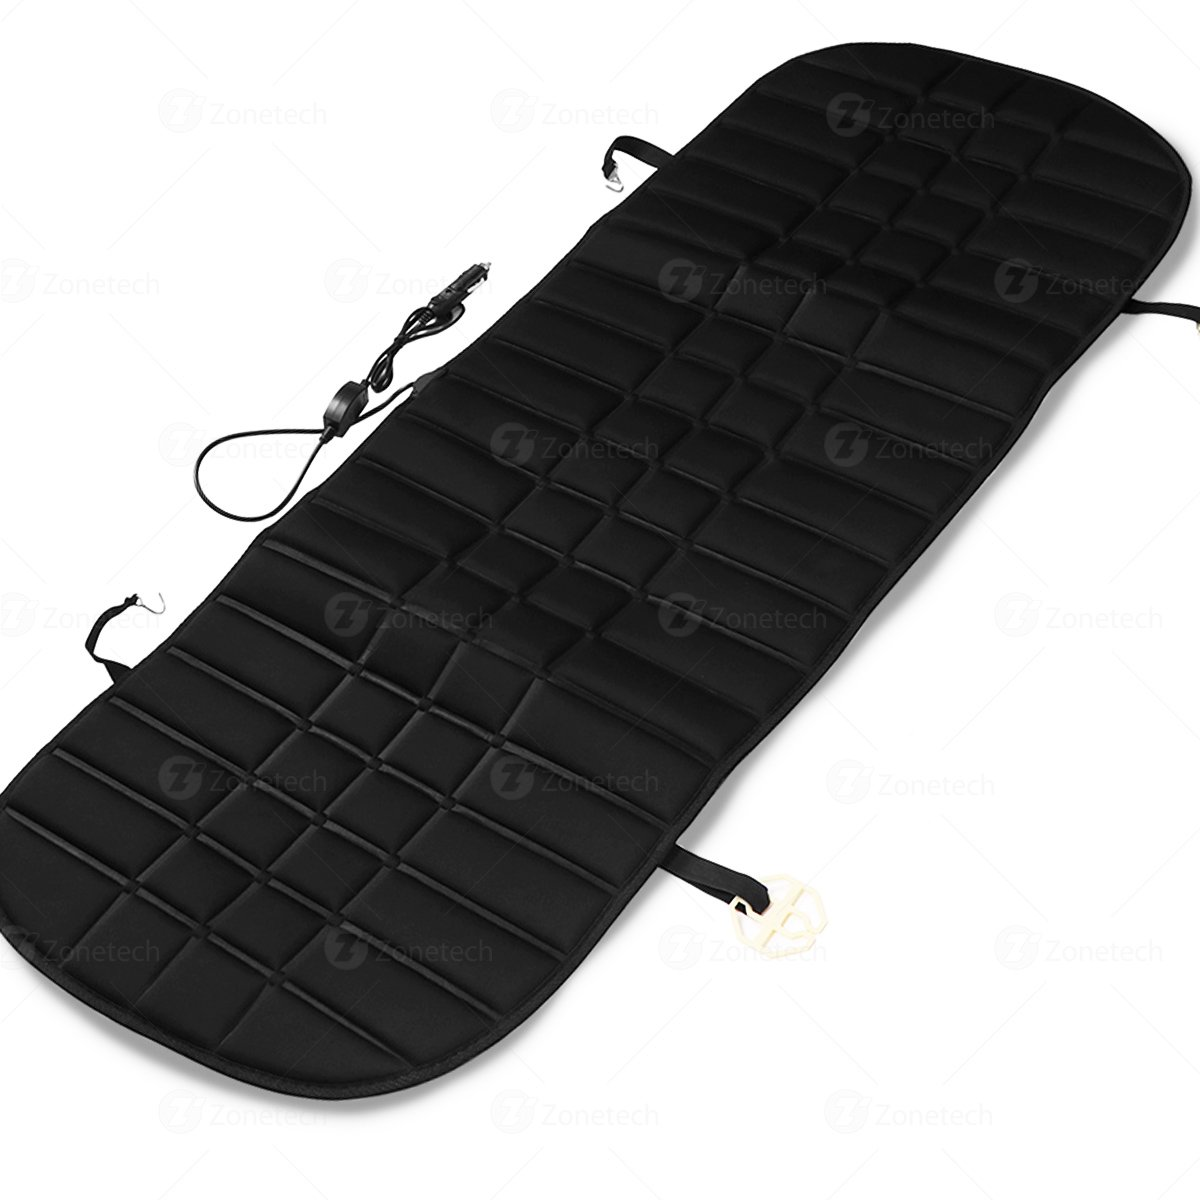 Black Premium Quality 12V Heating Warmer Rear Pad Hot Cover Perfect for Cold Weather and Winter Driving Comfort Wheels SE0054 Zone Tech Heated Rear Seat Cushion